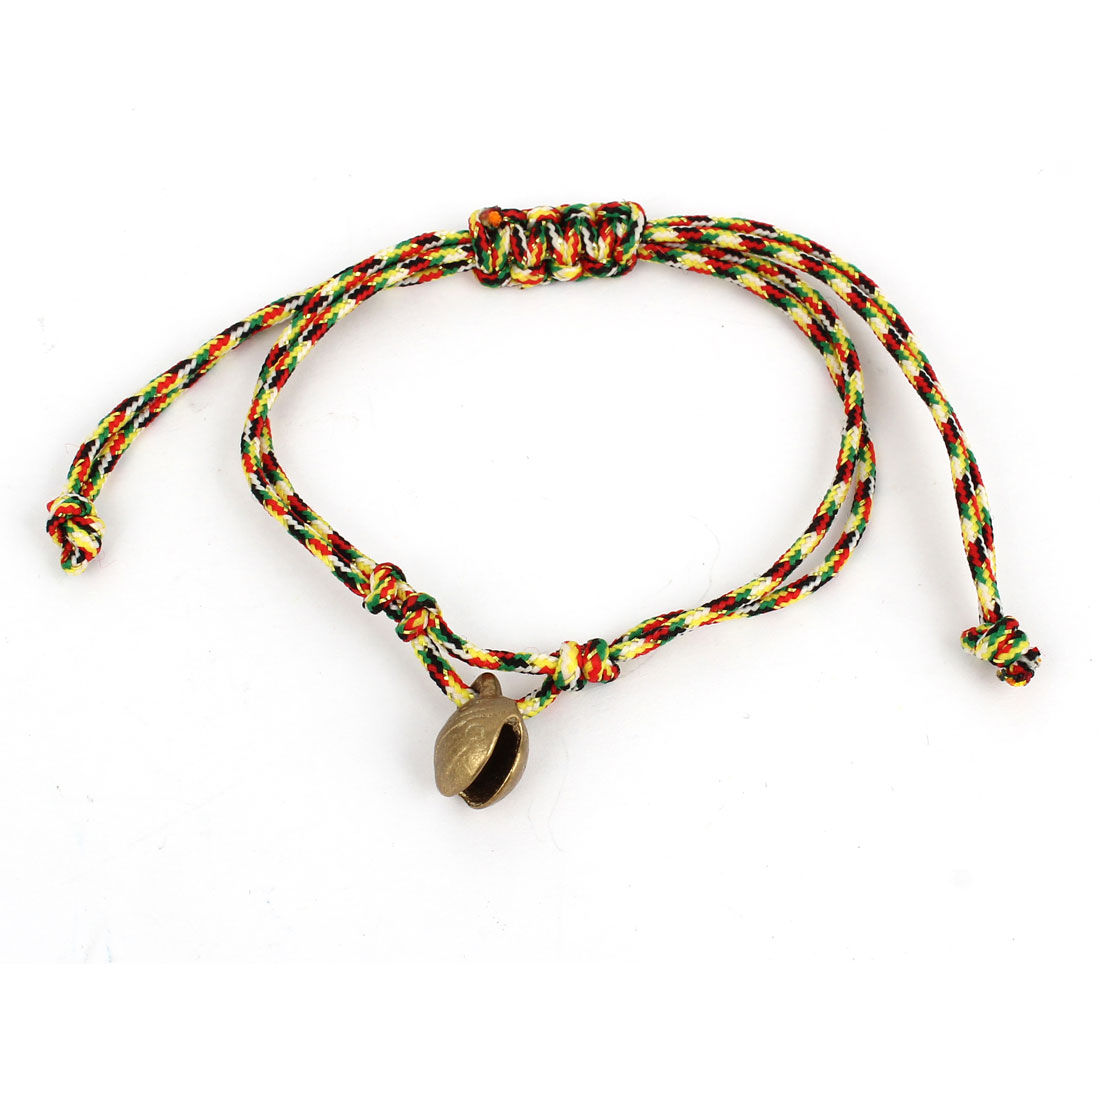 Colorful Adjustable Knotted Braided Bell Decor Hand Rope Bracelet for Ladies